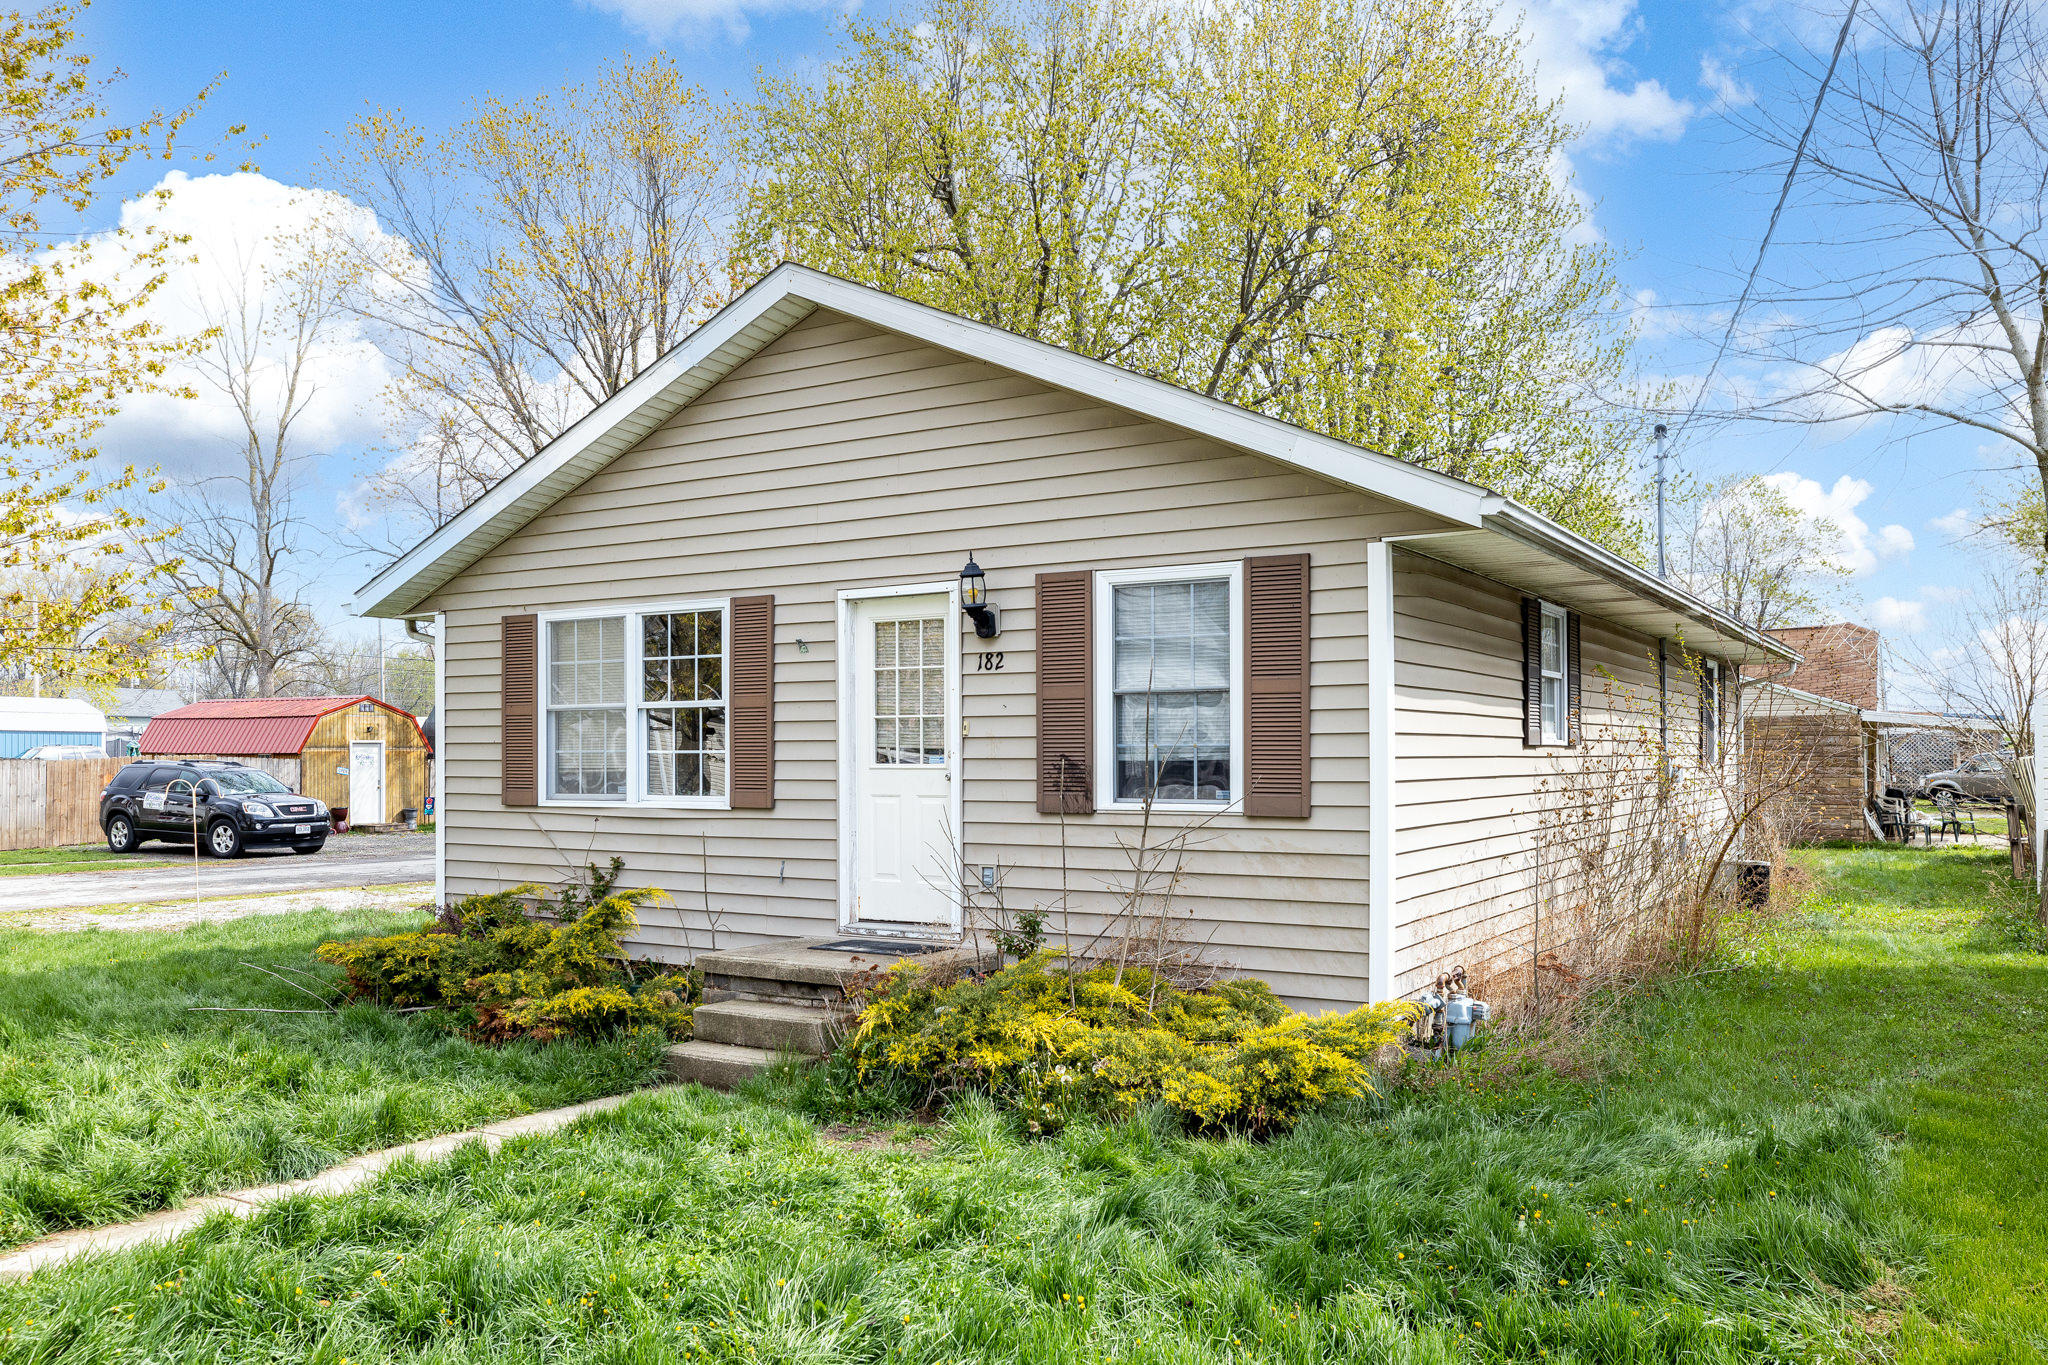 182 N Oak Street Property Photo - Lakeview, OH real estate listing